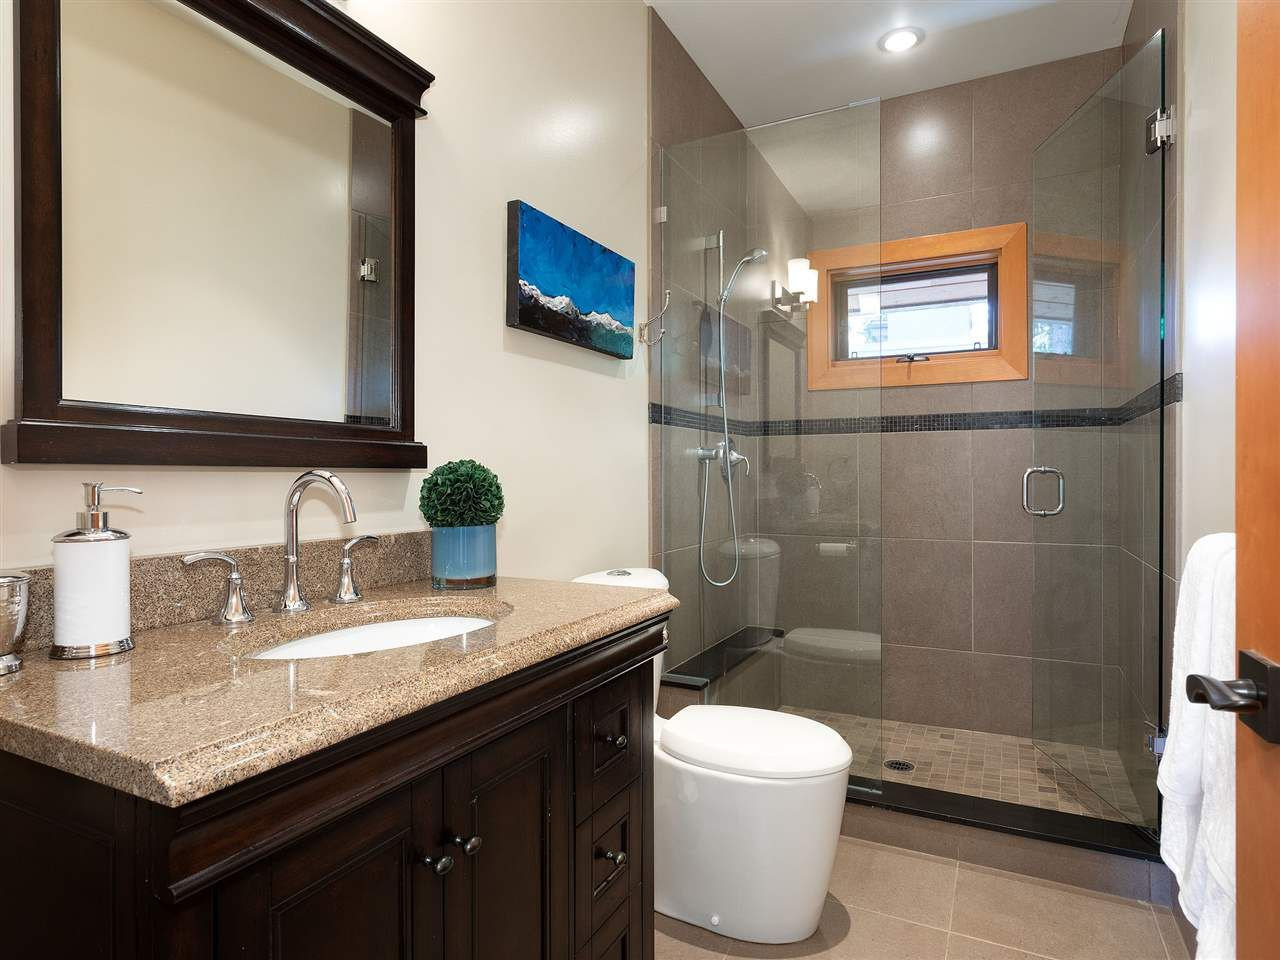 Photo 17: Photos: 3217 ARCHIBALD WAY in Whistler: Alta Vista House for sale : MLS®# R2468991